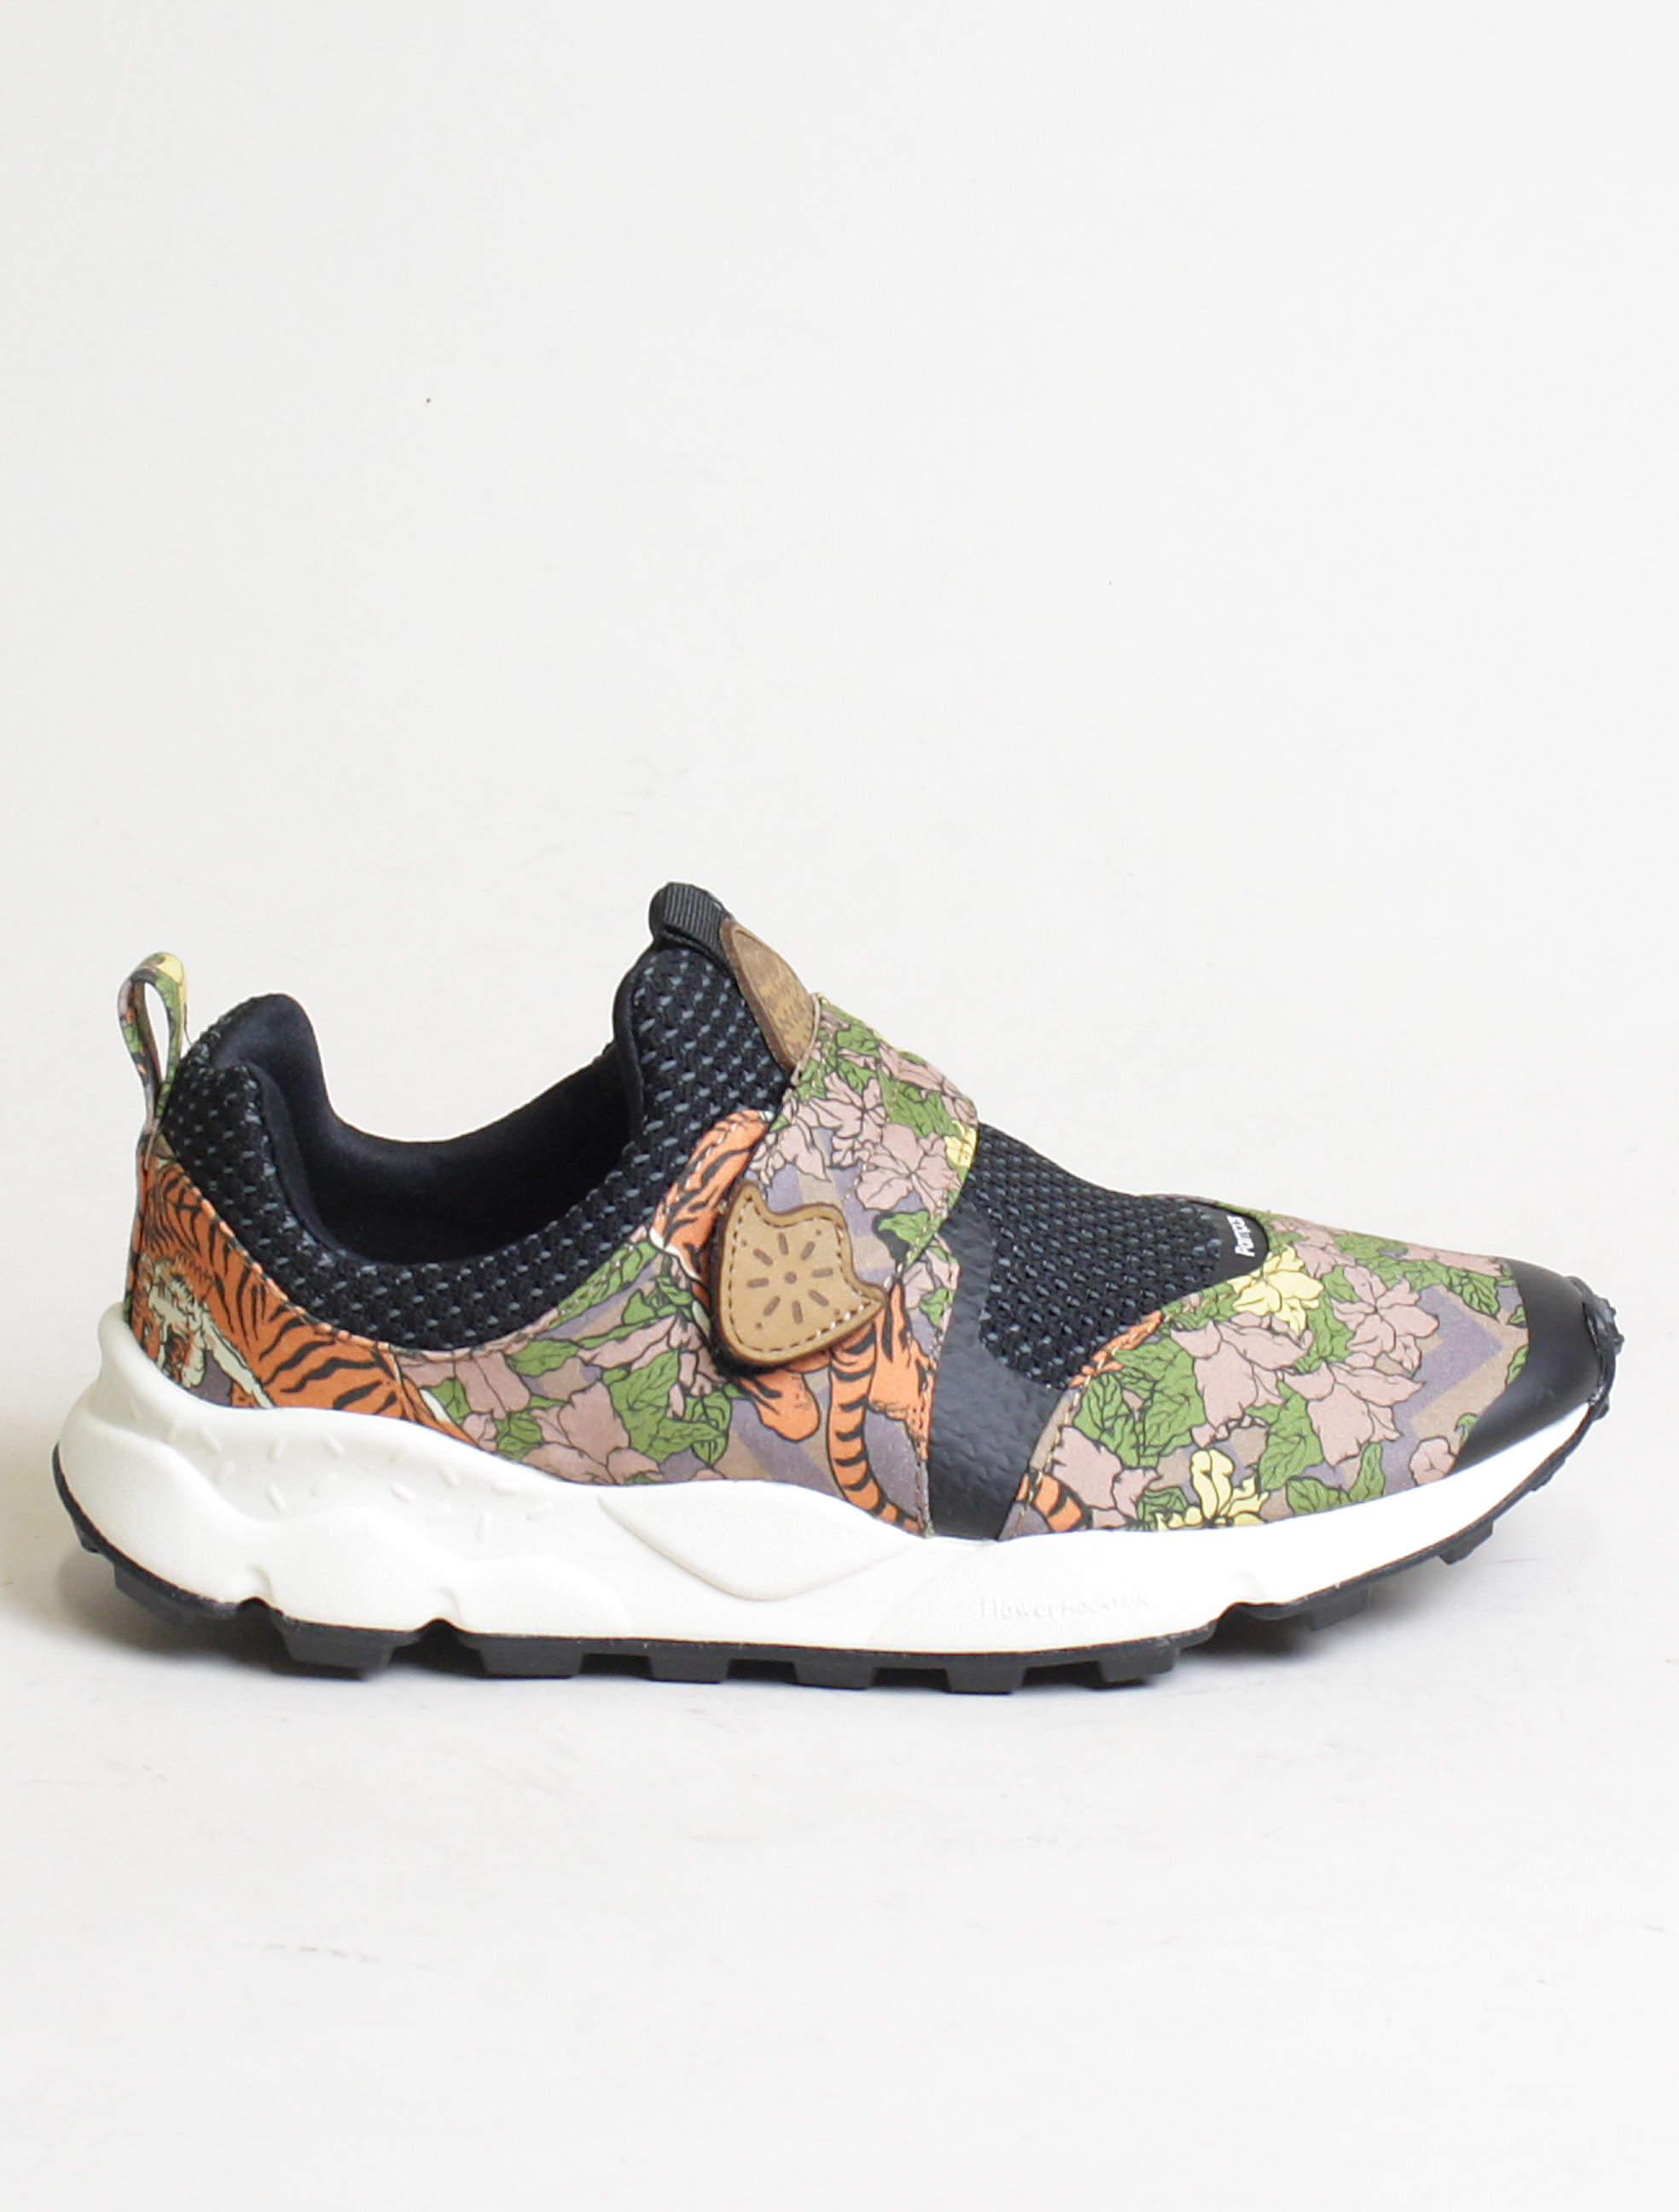 new styles 43e19 8d05f Flower Mountain sneakers Pampas 2 woman canvas tiger print marrone